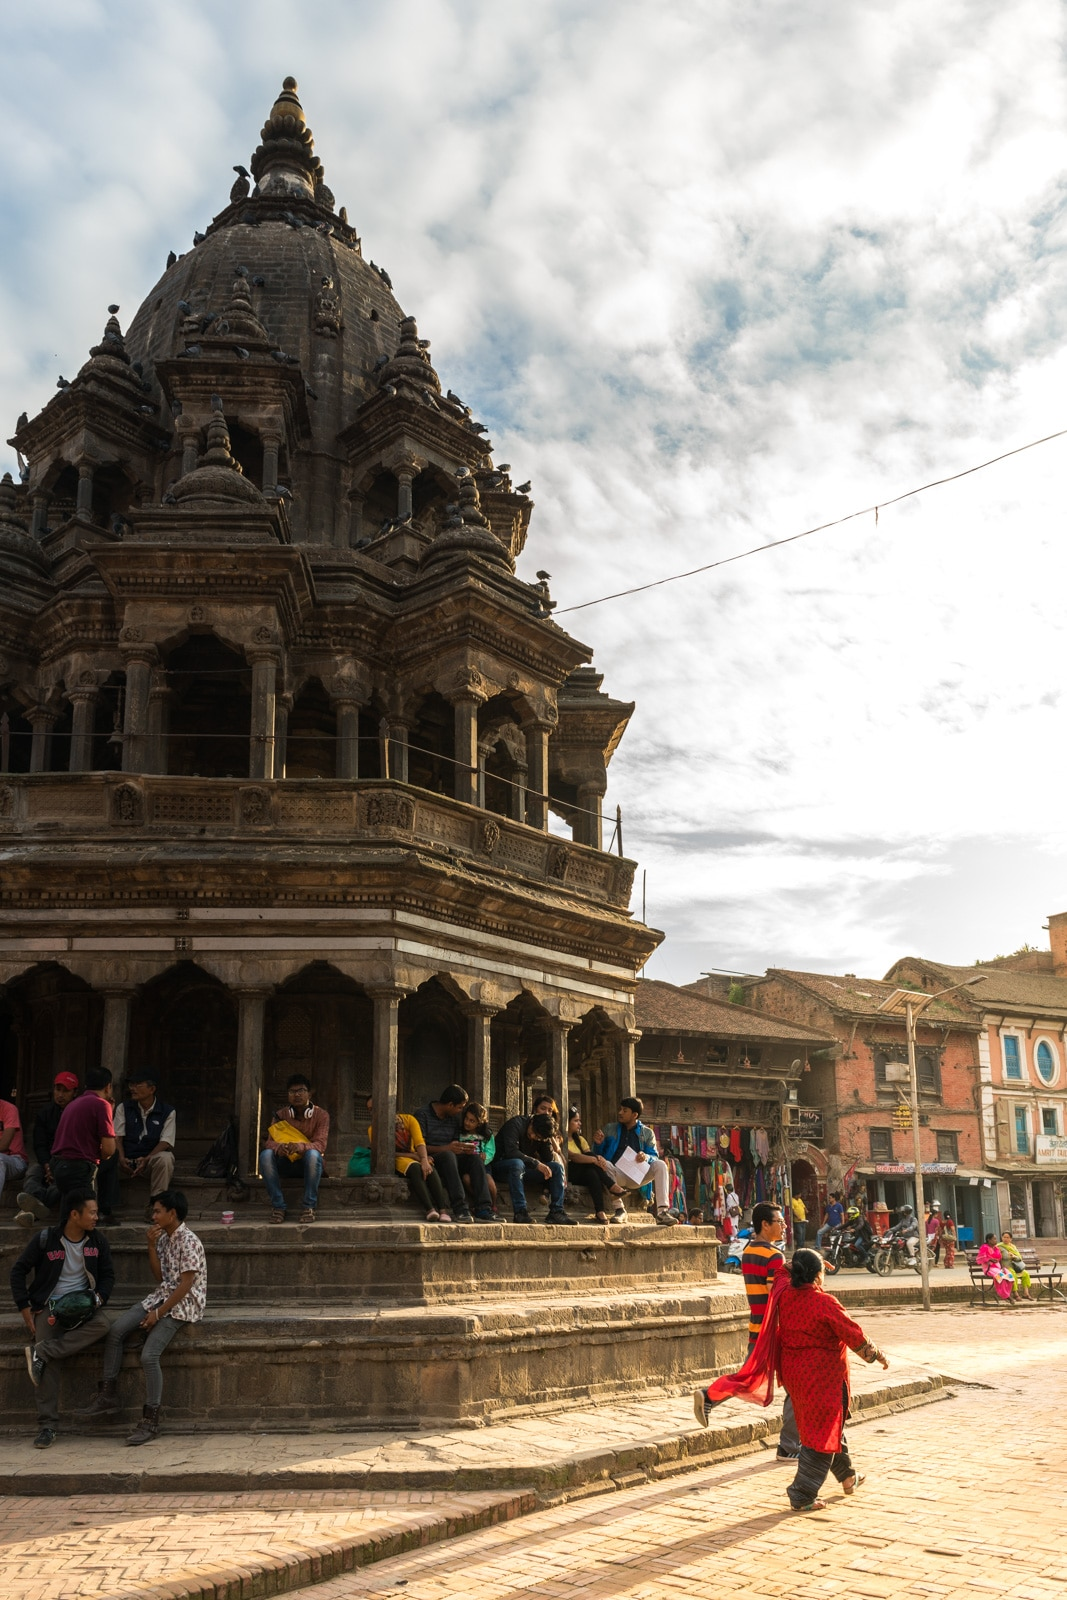 Dramatic lighting during sunset at the famous Durbar Square in Patan, Nepal. Only half an hour from central Kathmandu, Patan's old city is a must visit sight near Kathmandu.